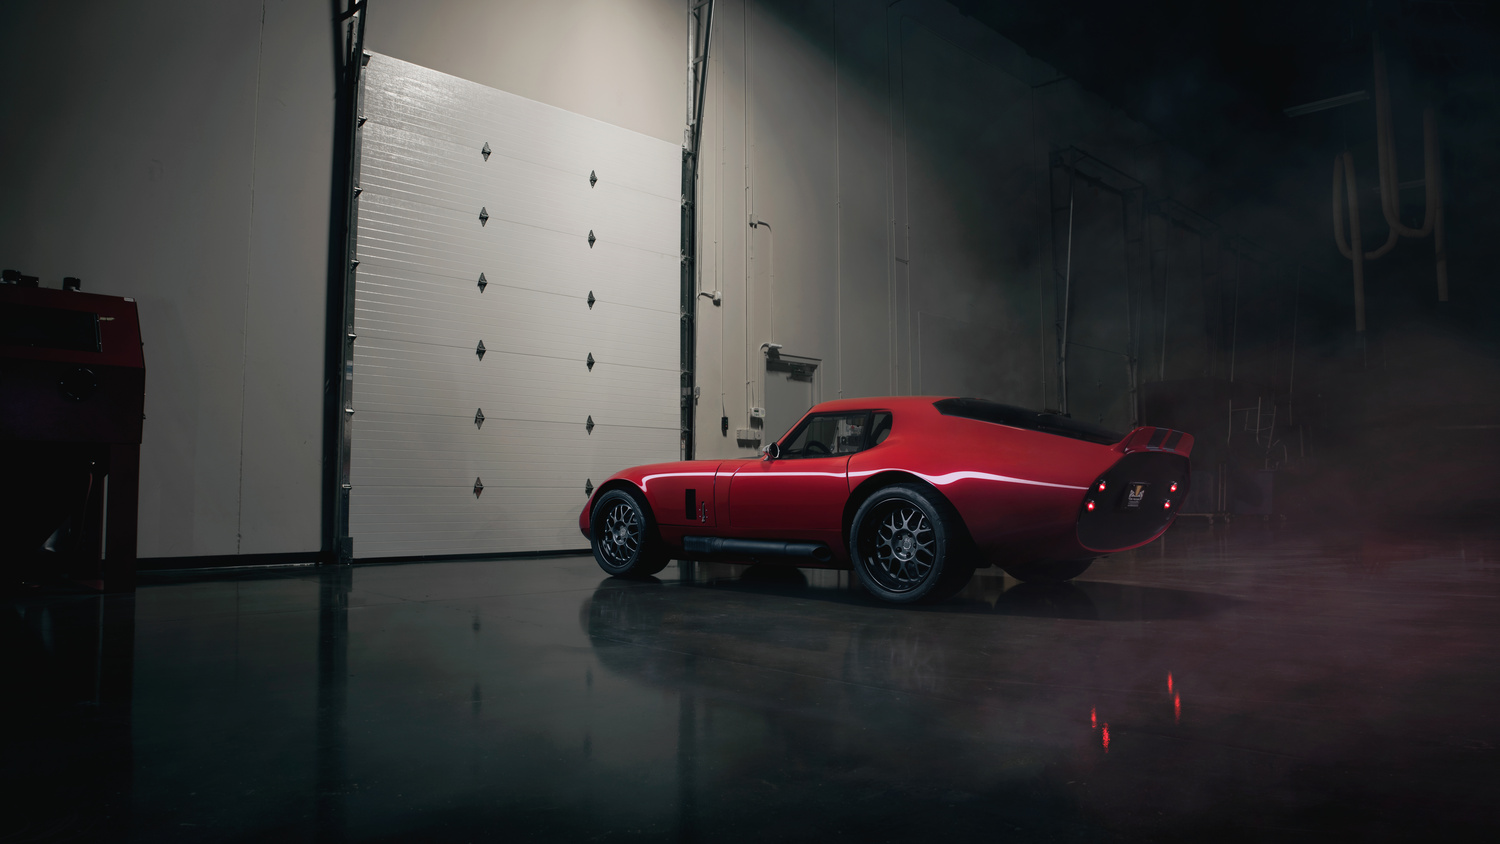 820bhp Shelby Daytona Coupe by Dominic Mann